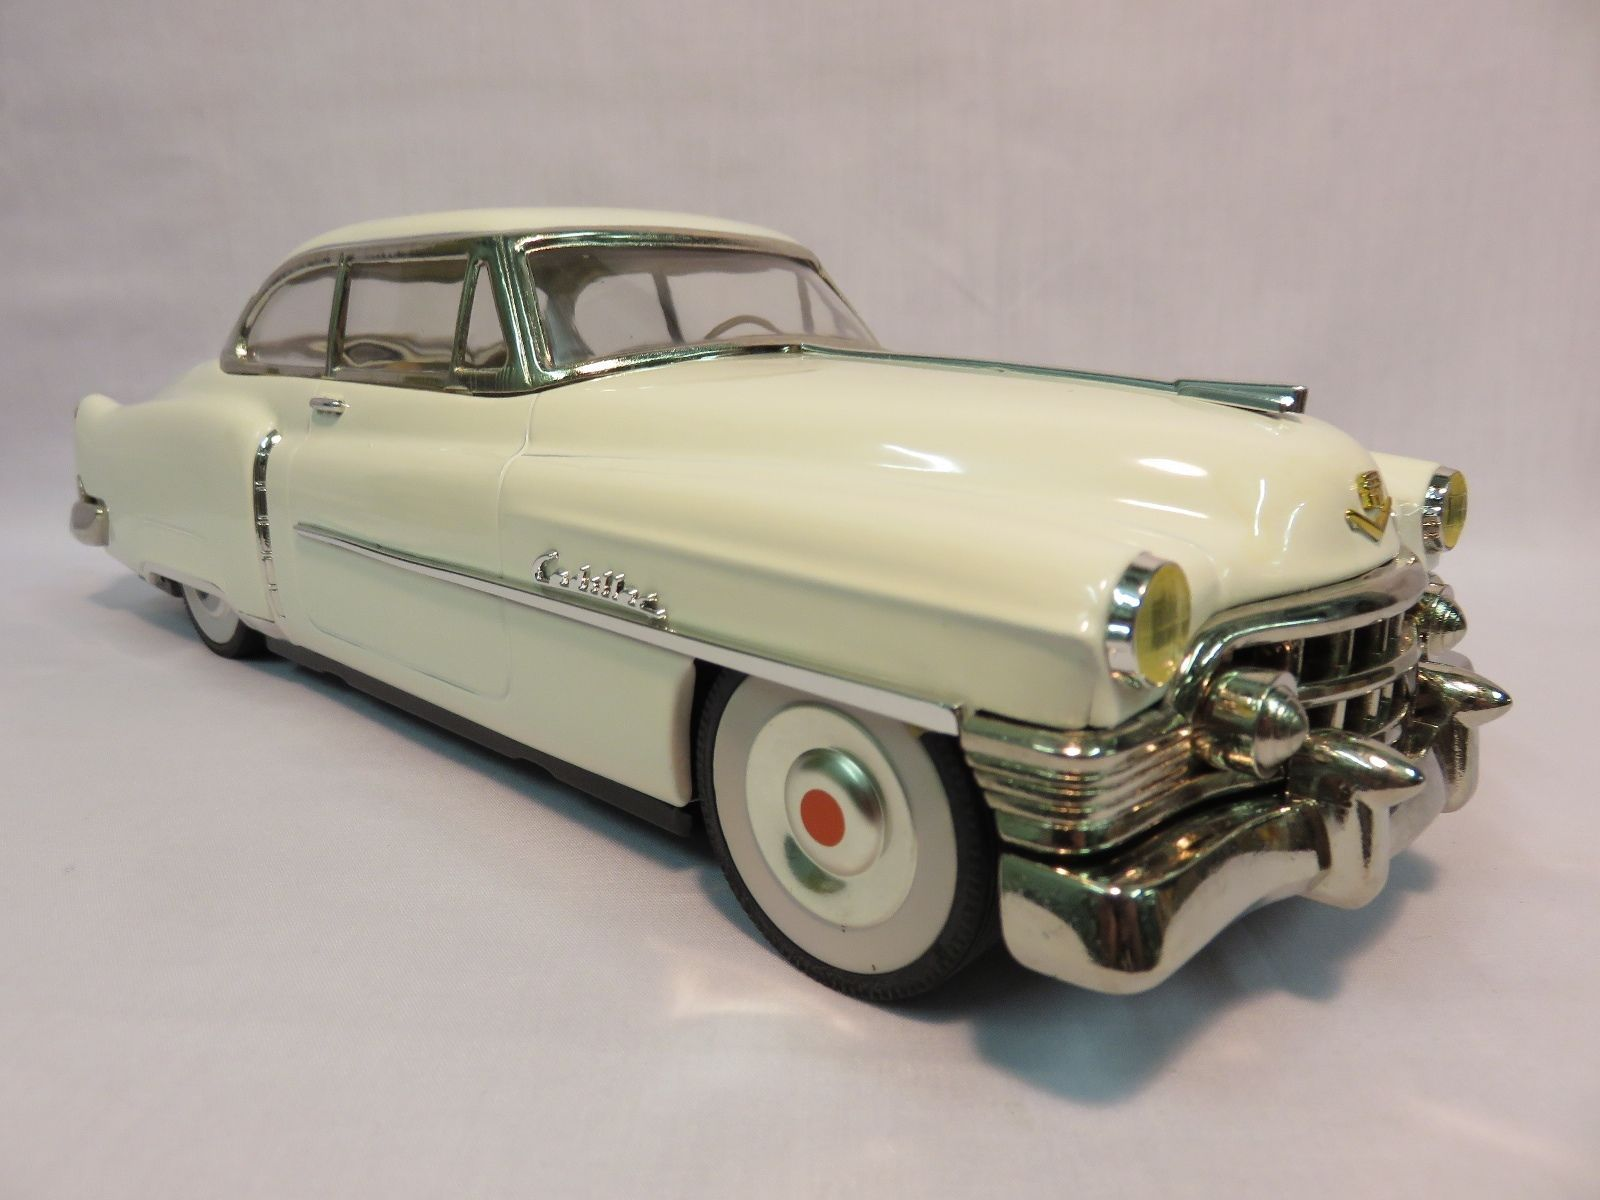 vintage 1950 cadillac sedan white tin friction car made in japan ebay cadillac modelauto. Black Bedroom Furniture Sets. Home Design Ideas